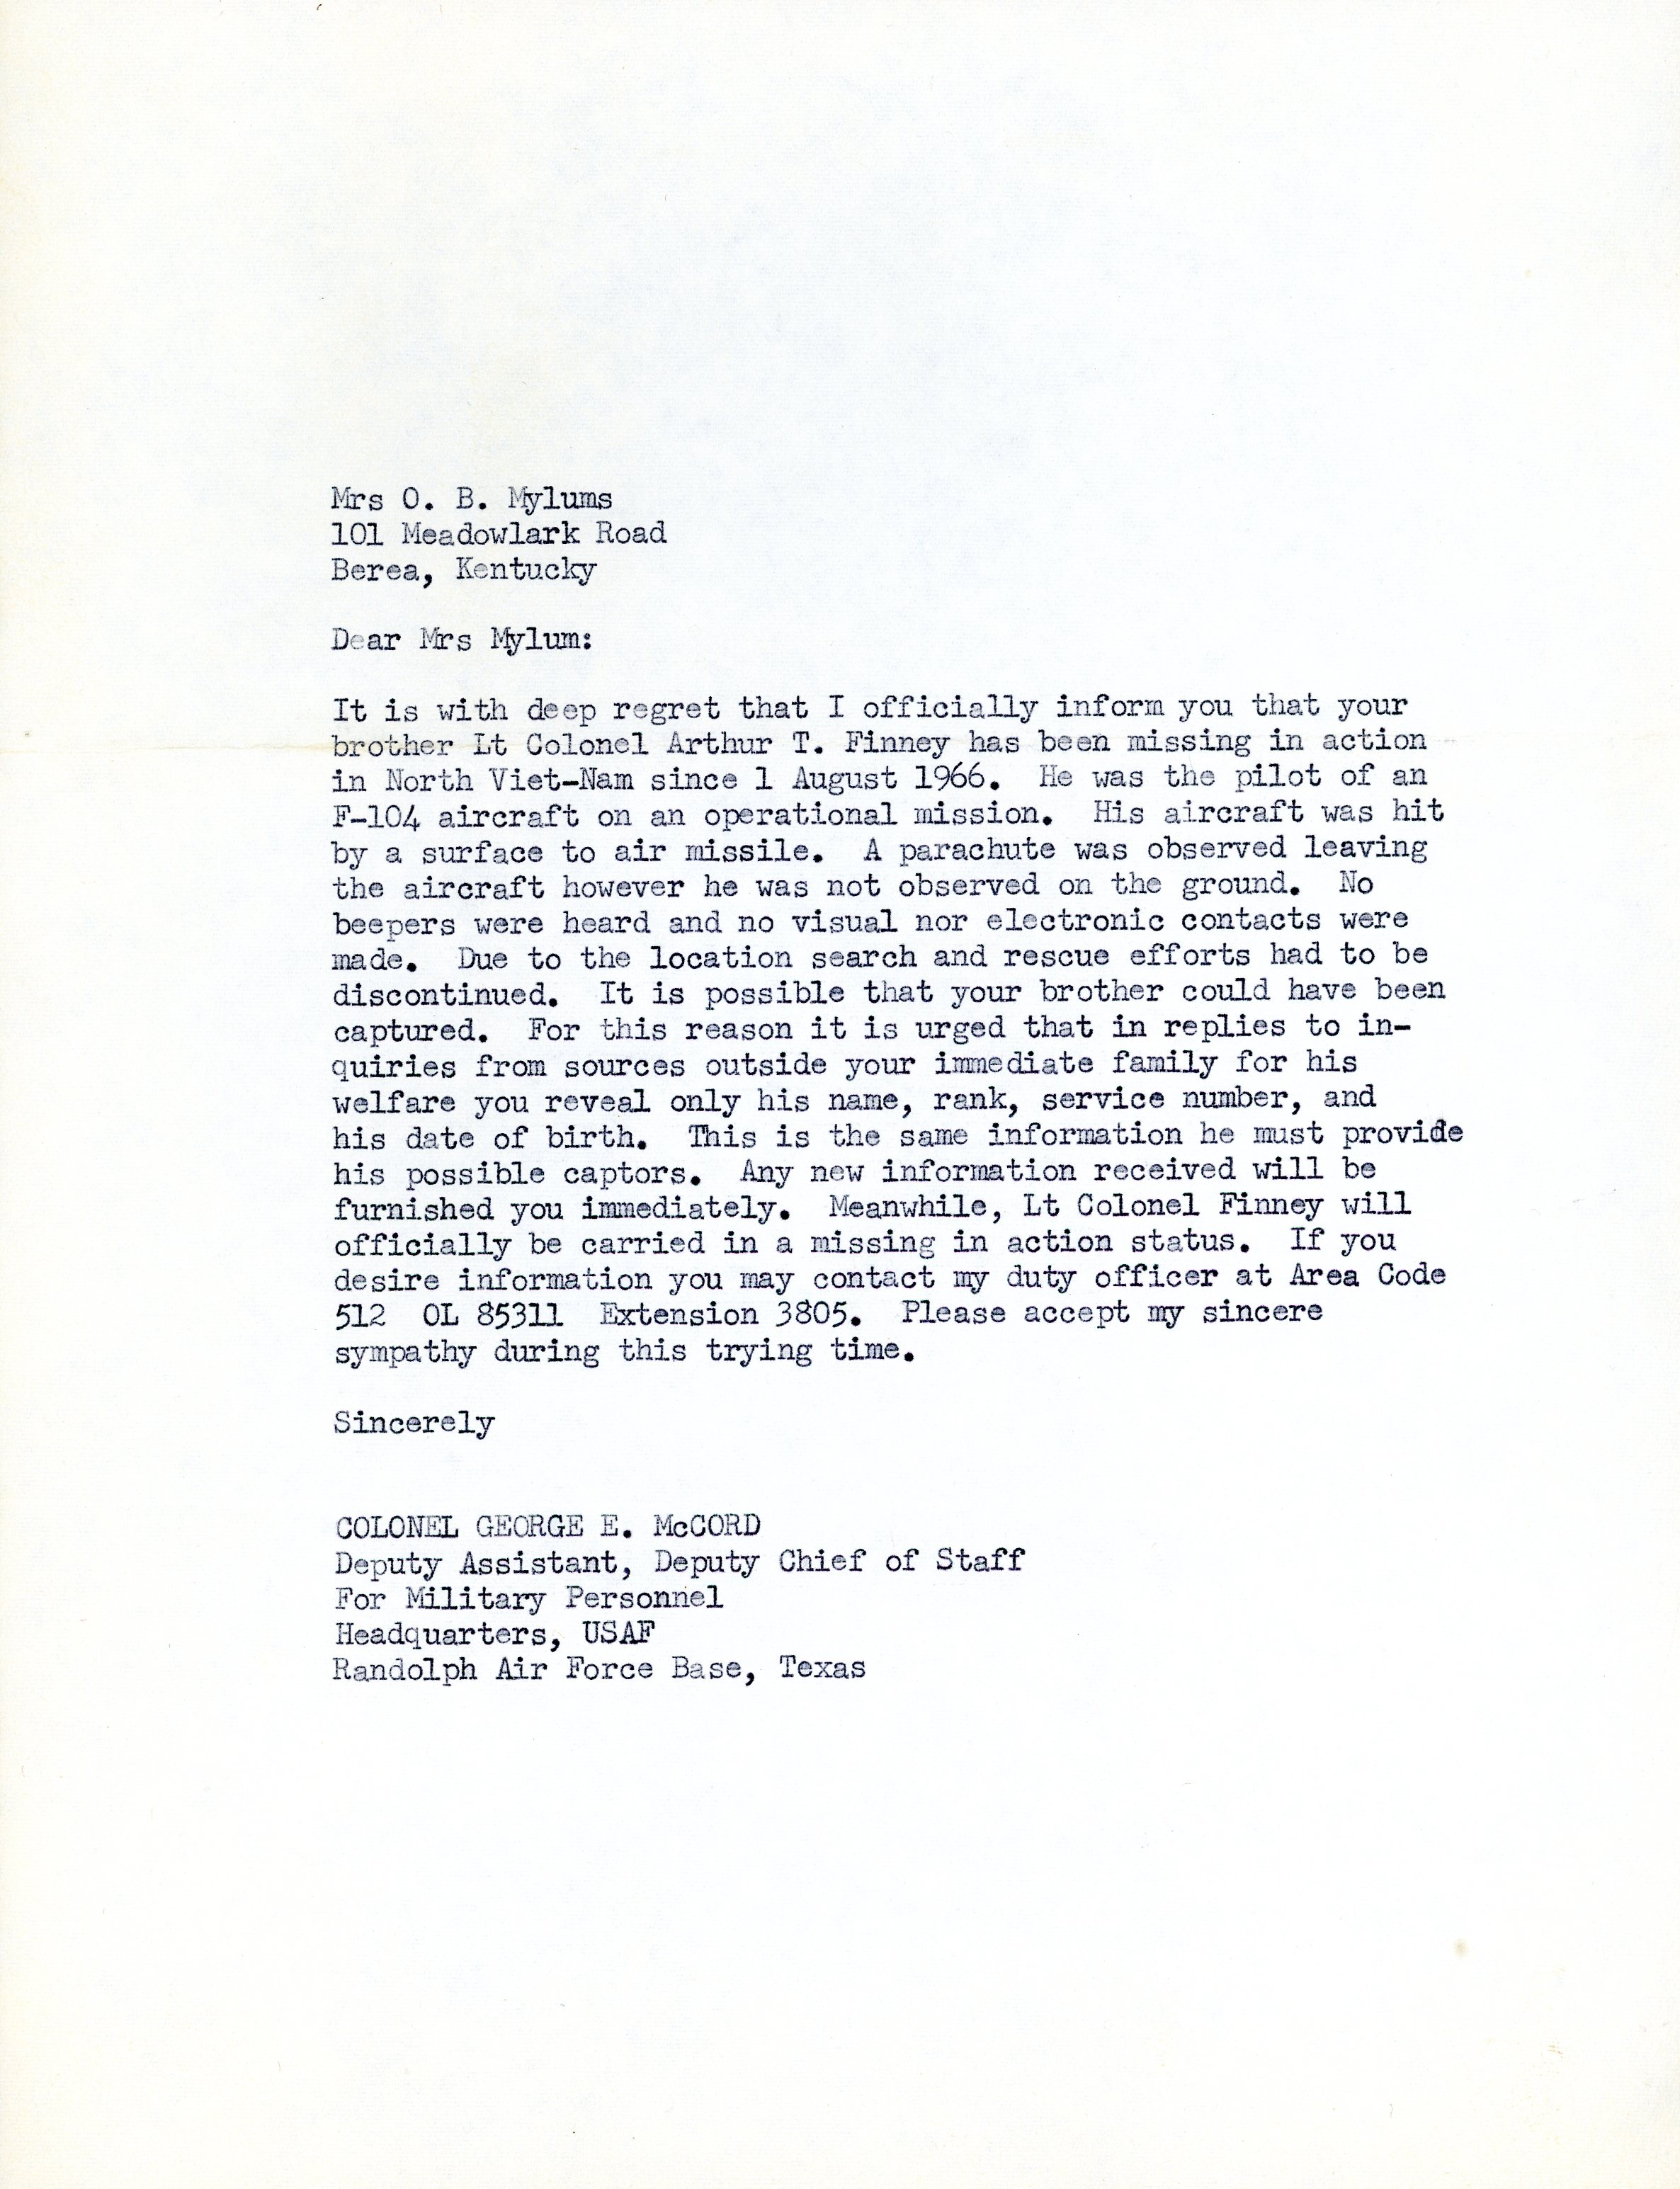 Official letter from Air Force to Dixie notifying her of his missing in action status.